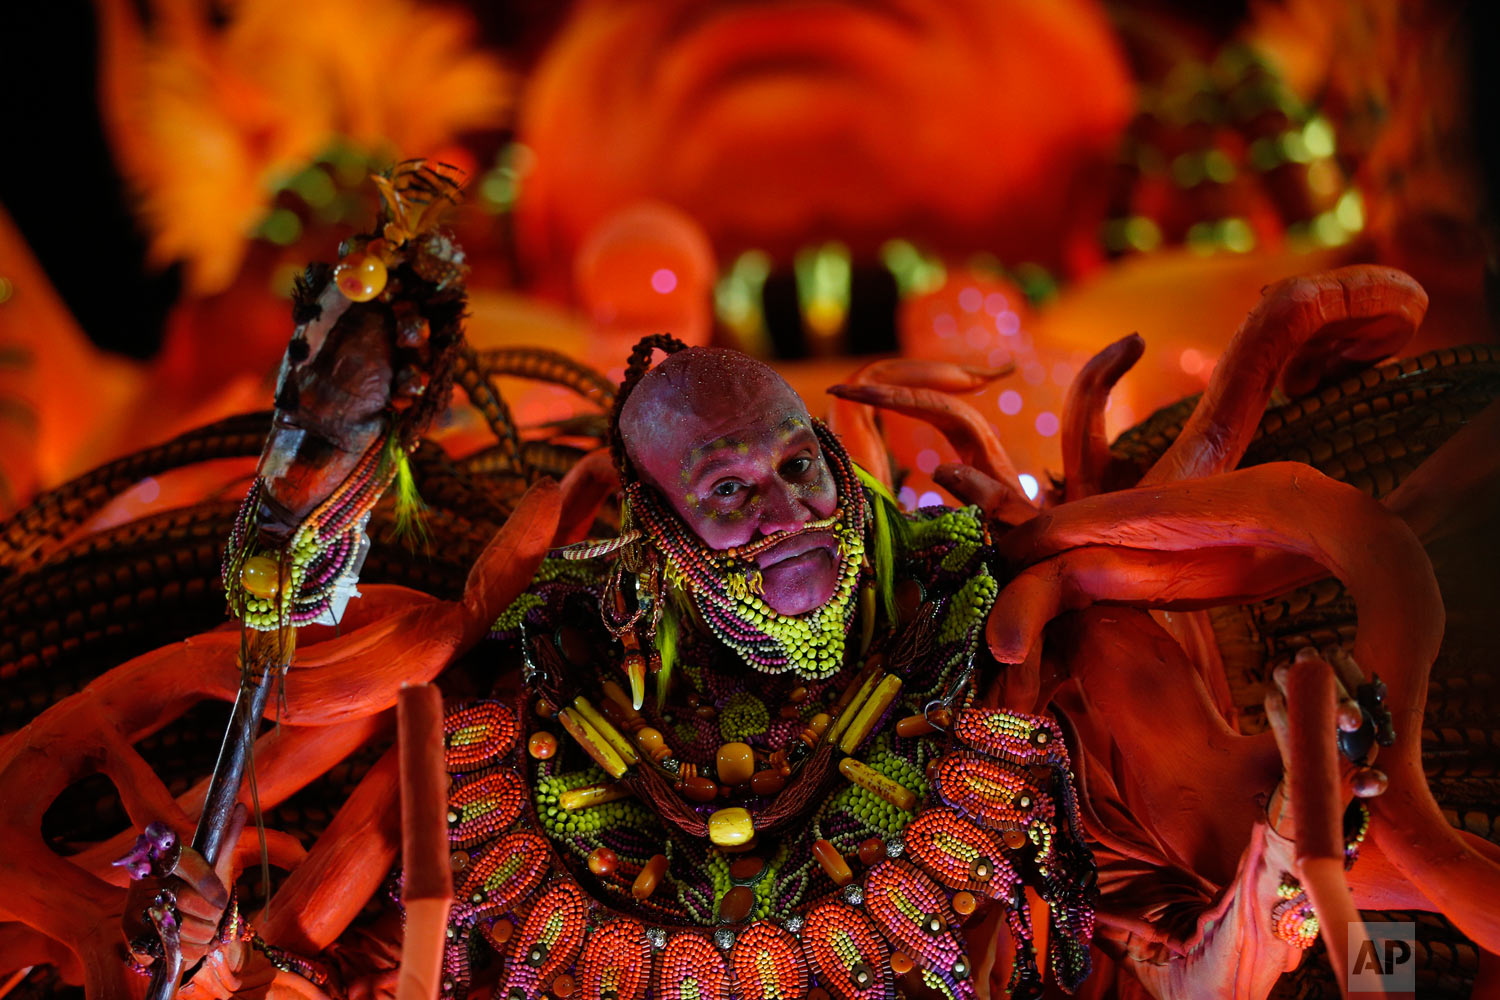 A performer from the Salgueiro samba school parades during Carnival celebrations at the Sambadrome in Rio de Janeiro, Brazil, early Tuesday, Feb. 13, 2018. (AP Photo/Silvia Izquierdo)